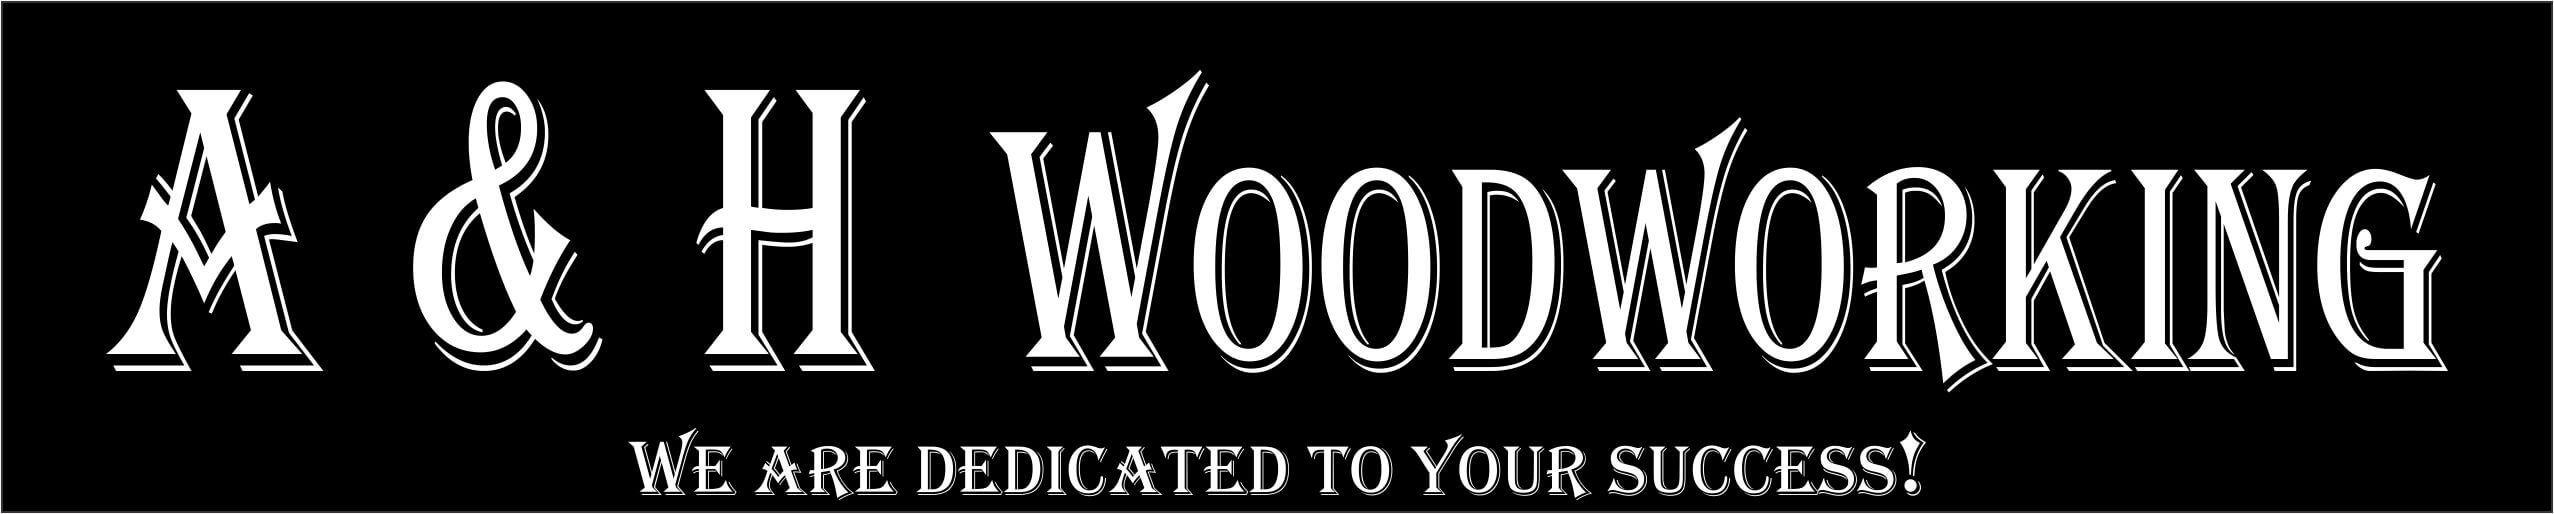 A & H Woodworking